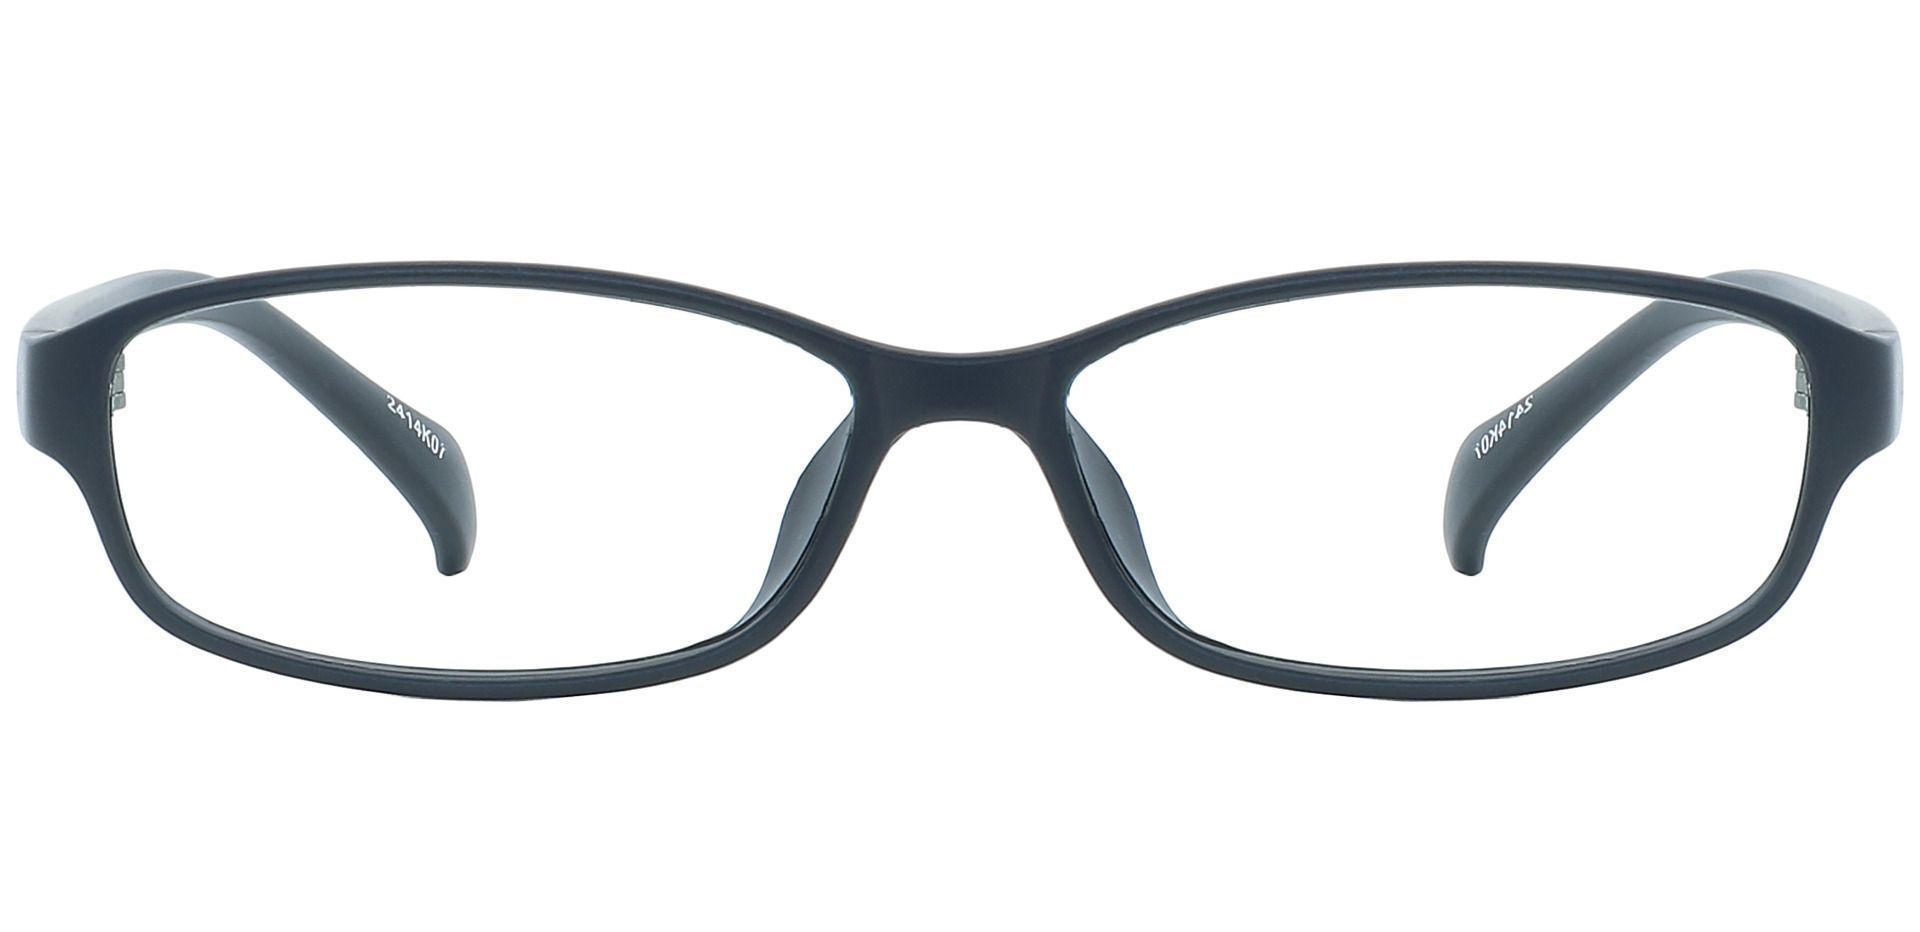 Pat Rectangle Single Vision Glasses - Black